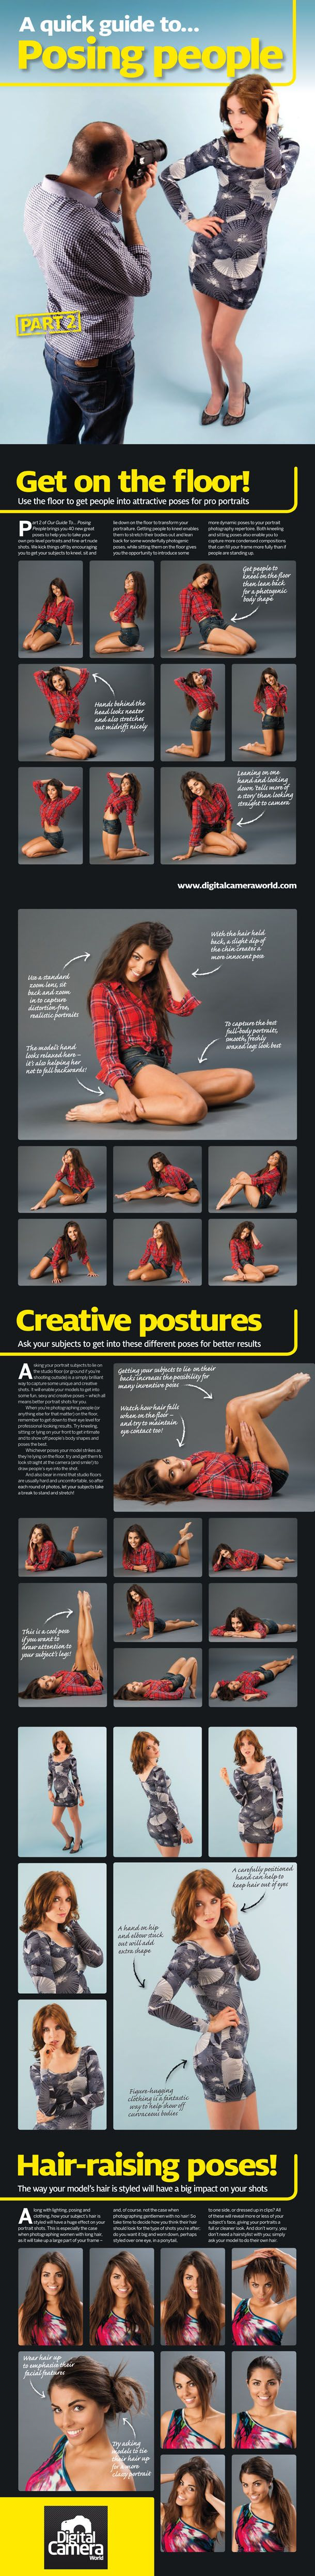 Free portrait #photography posing guide: 40 different ideas for poses, postures and hairstyles.